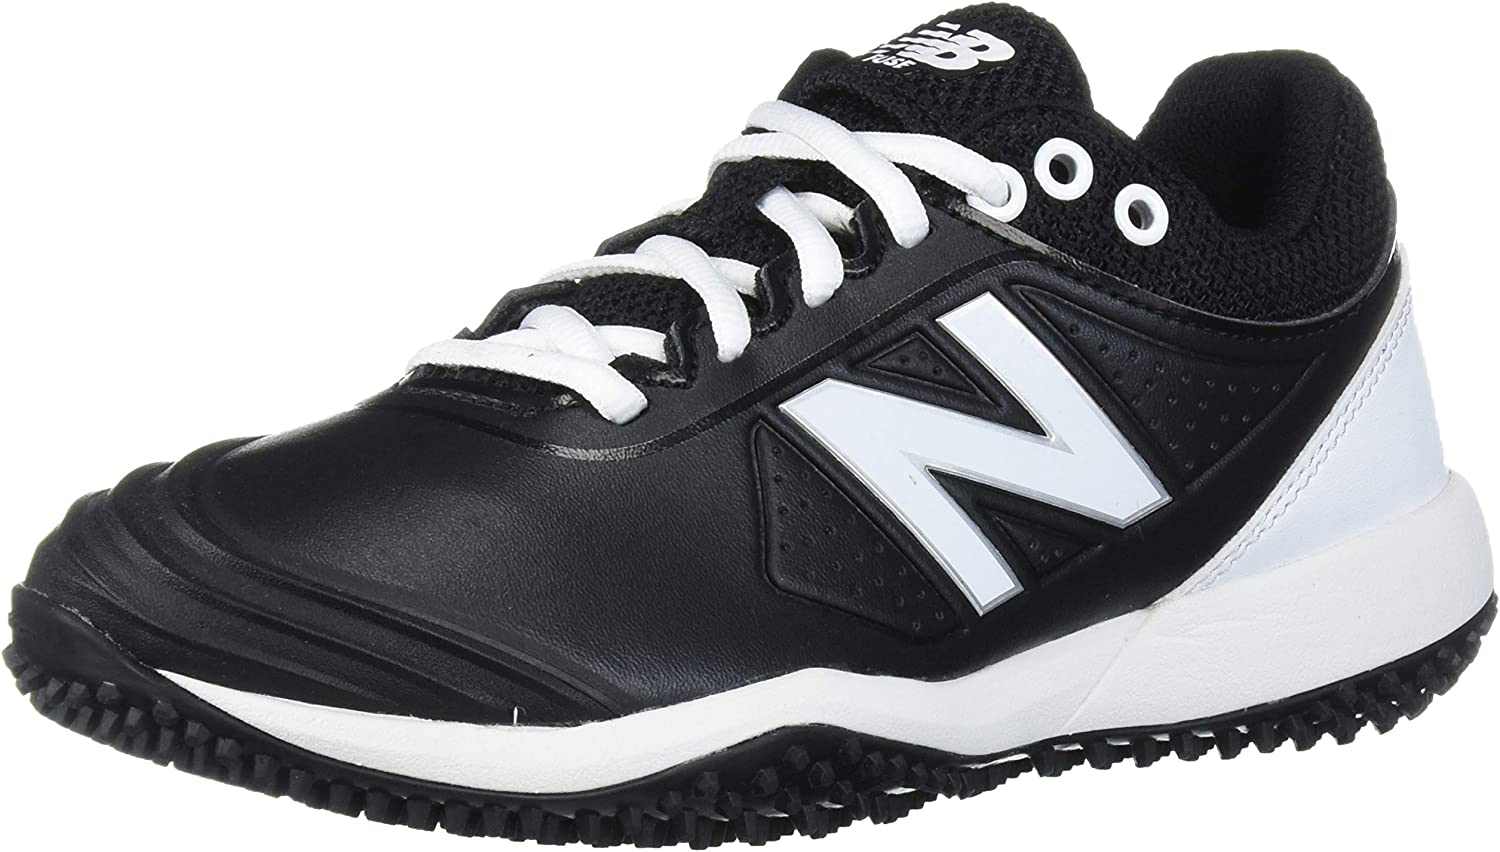 New Balance Women's Fuse V2 Turf Softball Shoe